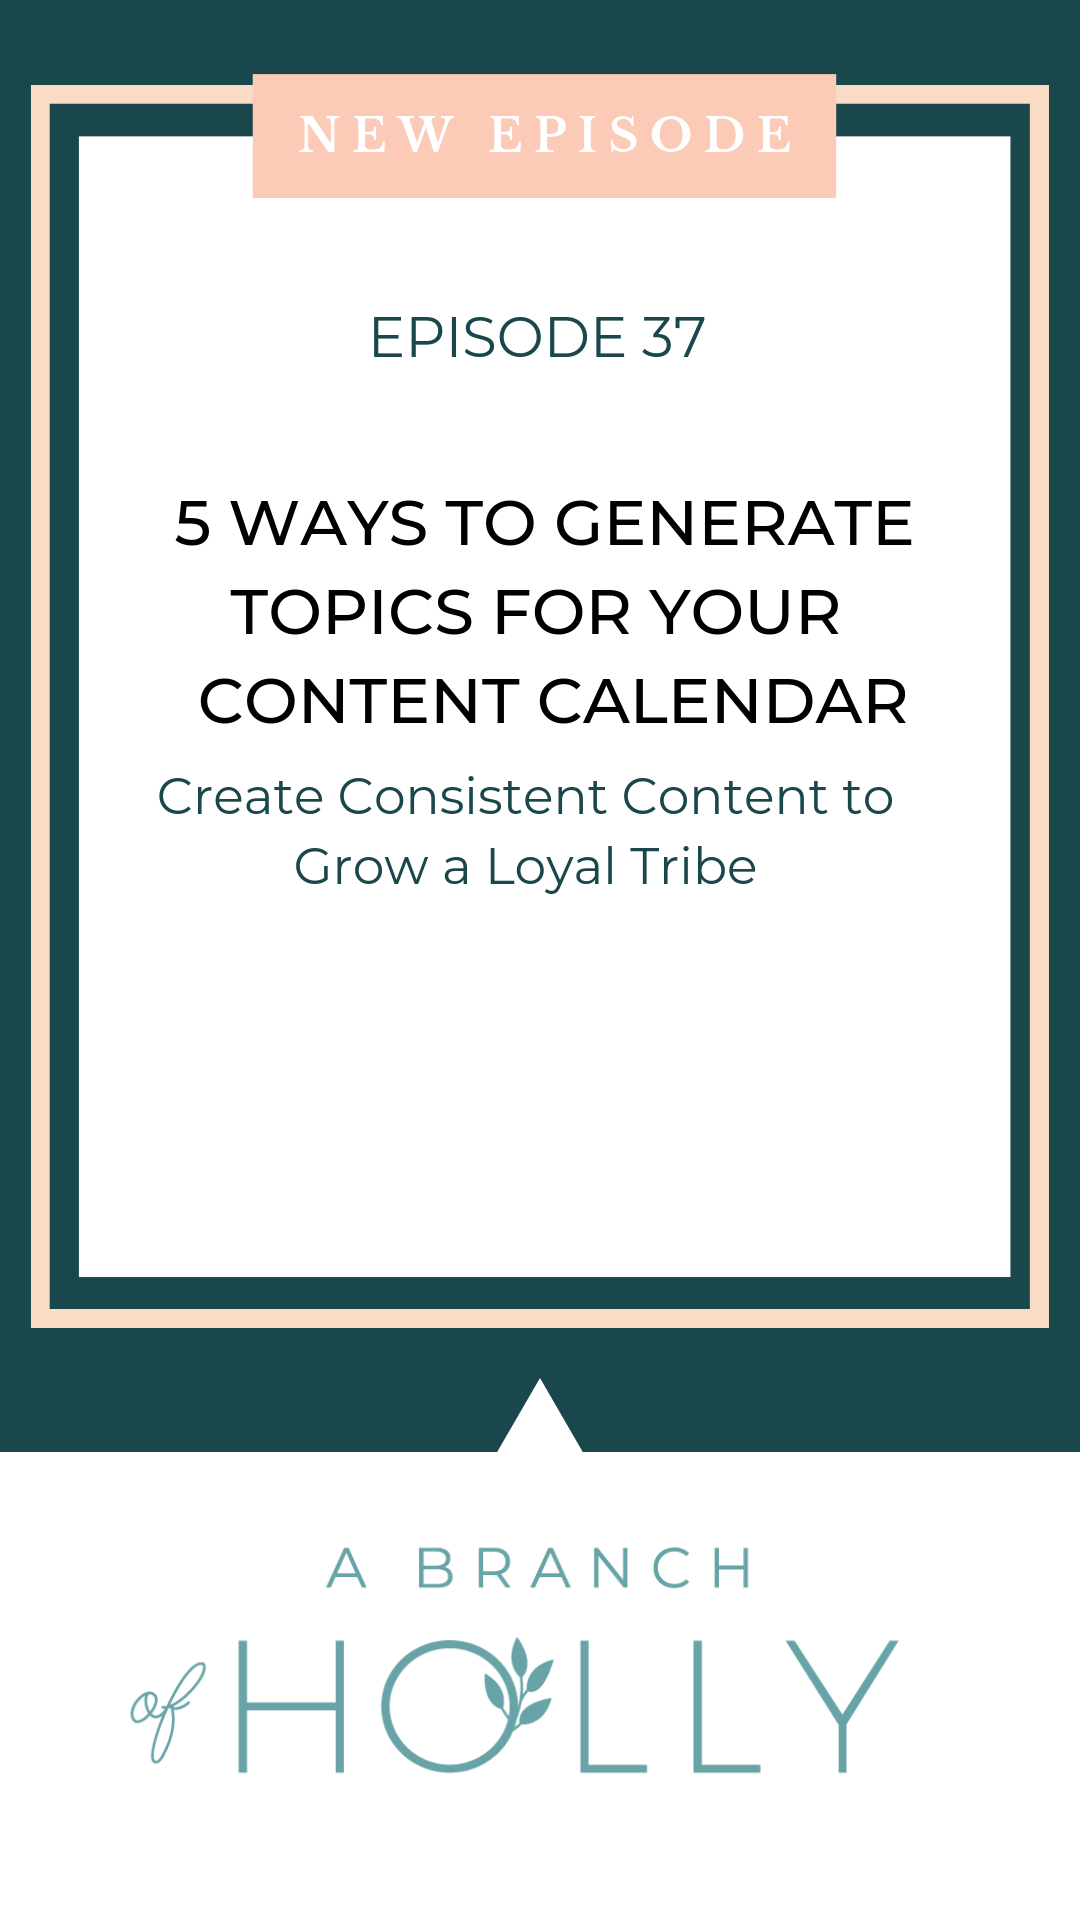 Want to learn some content creation hacks to create three months' worth of ideas in just 2 hours? In this episode, I'll share with you my top tips on how to make the most out of your content calendar, including ideas to stay organised, writing tips, social media ideas and so much more that you can implement in your business. Repin and get access to my free 3-month content calendar template! #contentcreation #socialmedia #businesstips